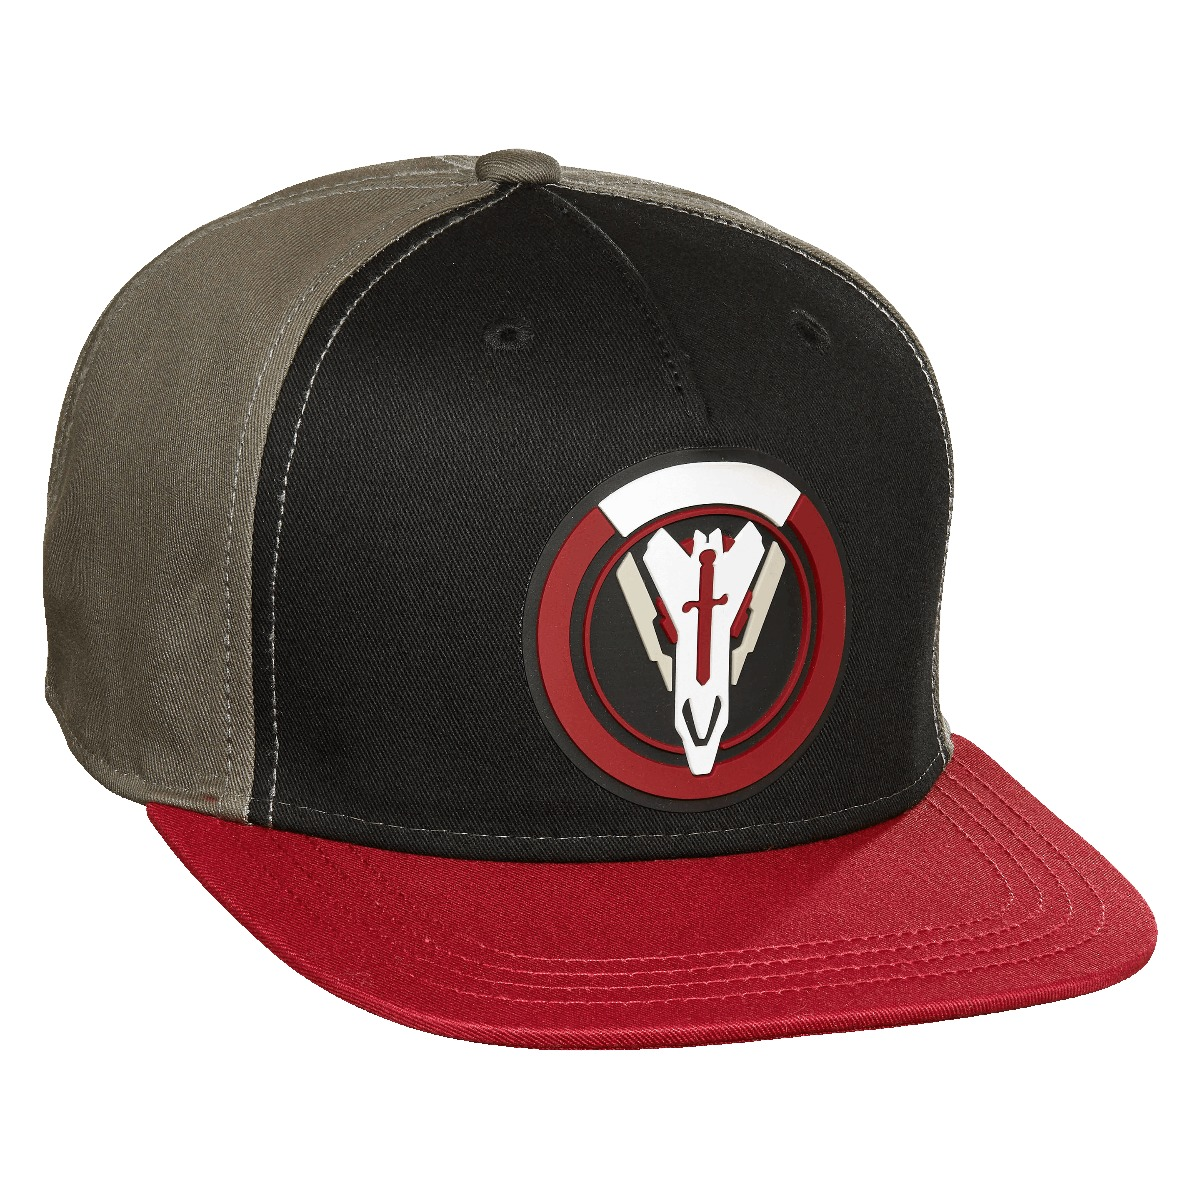 Overwatch: Night Snap back Hat image